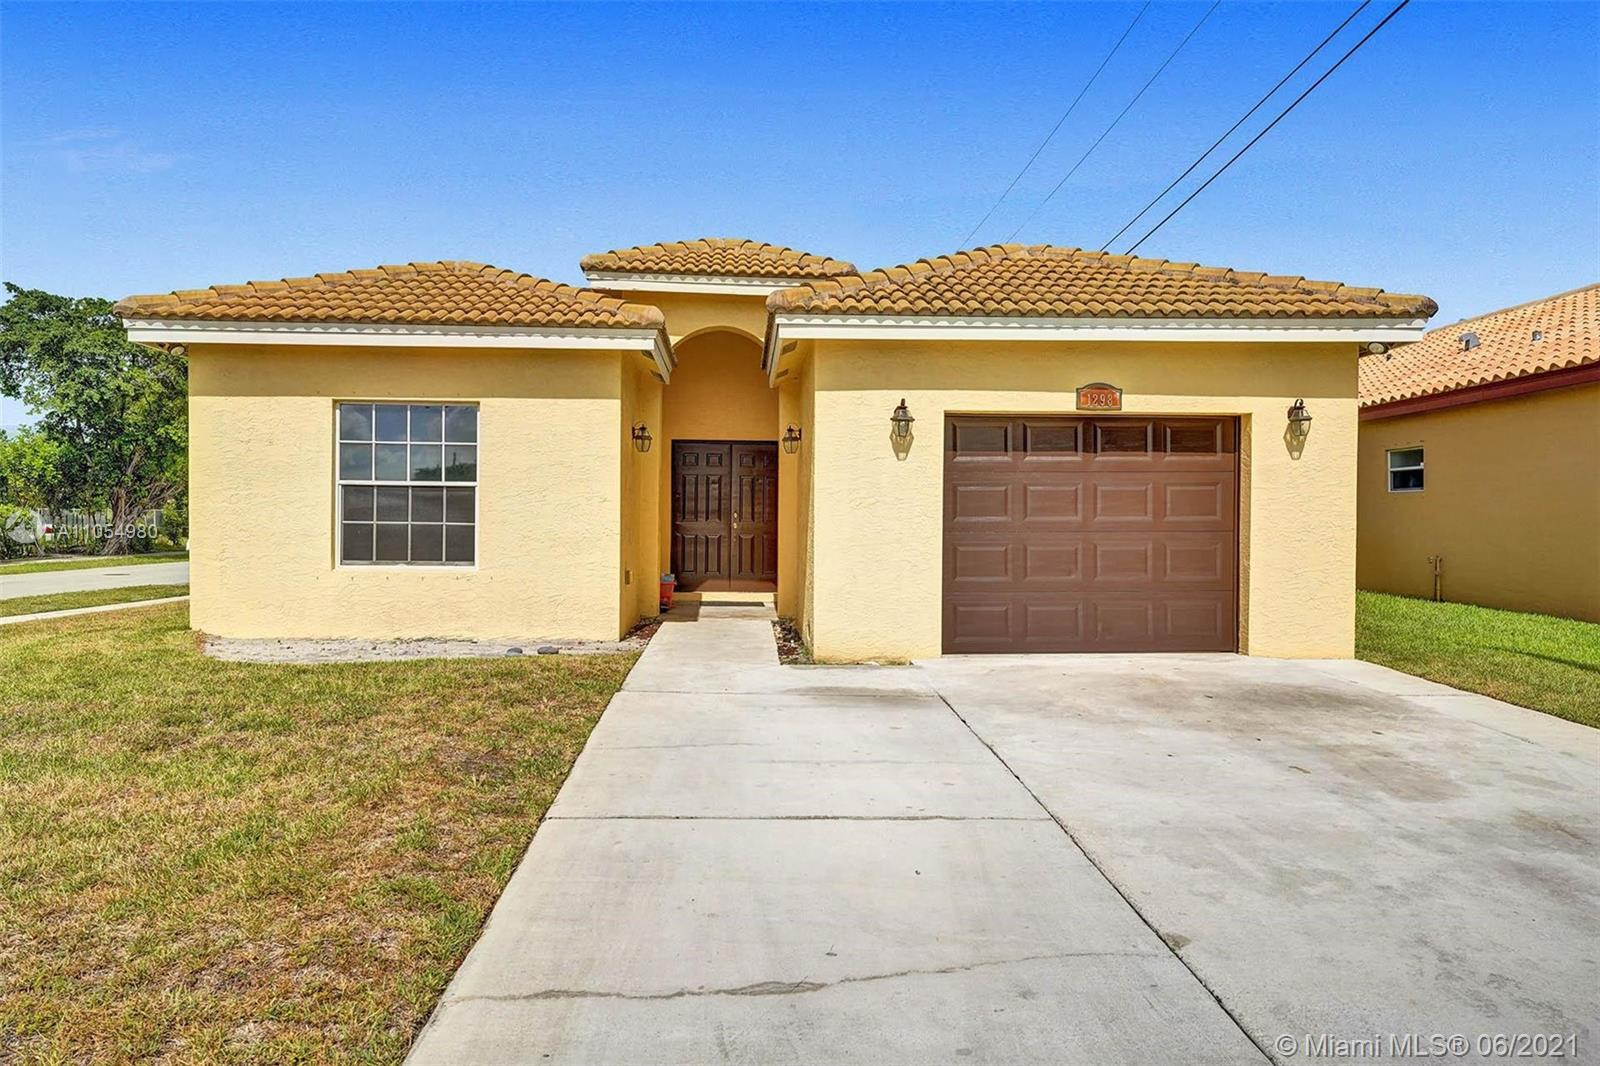 Perfect home for a 1st Time Homebuyer! Spacious 3 bedroom, 2 bathroom, 1 car garage in the desirable